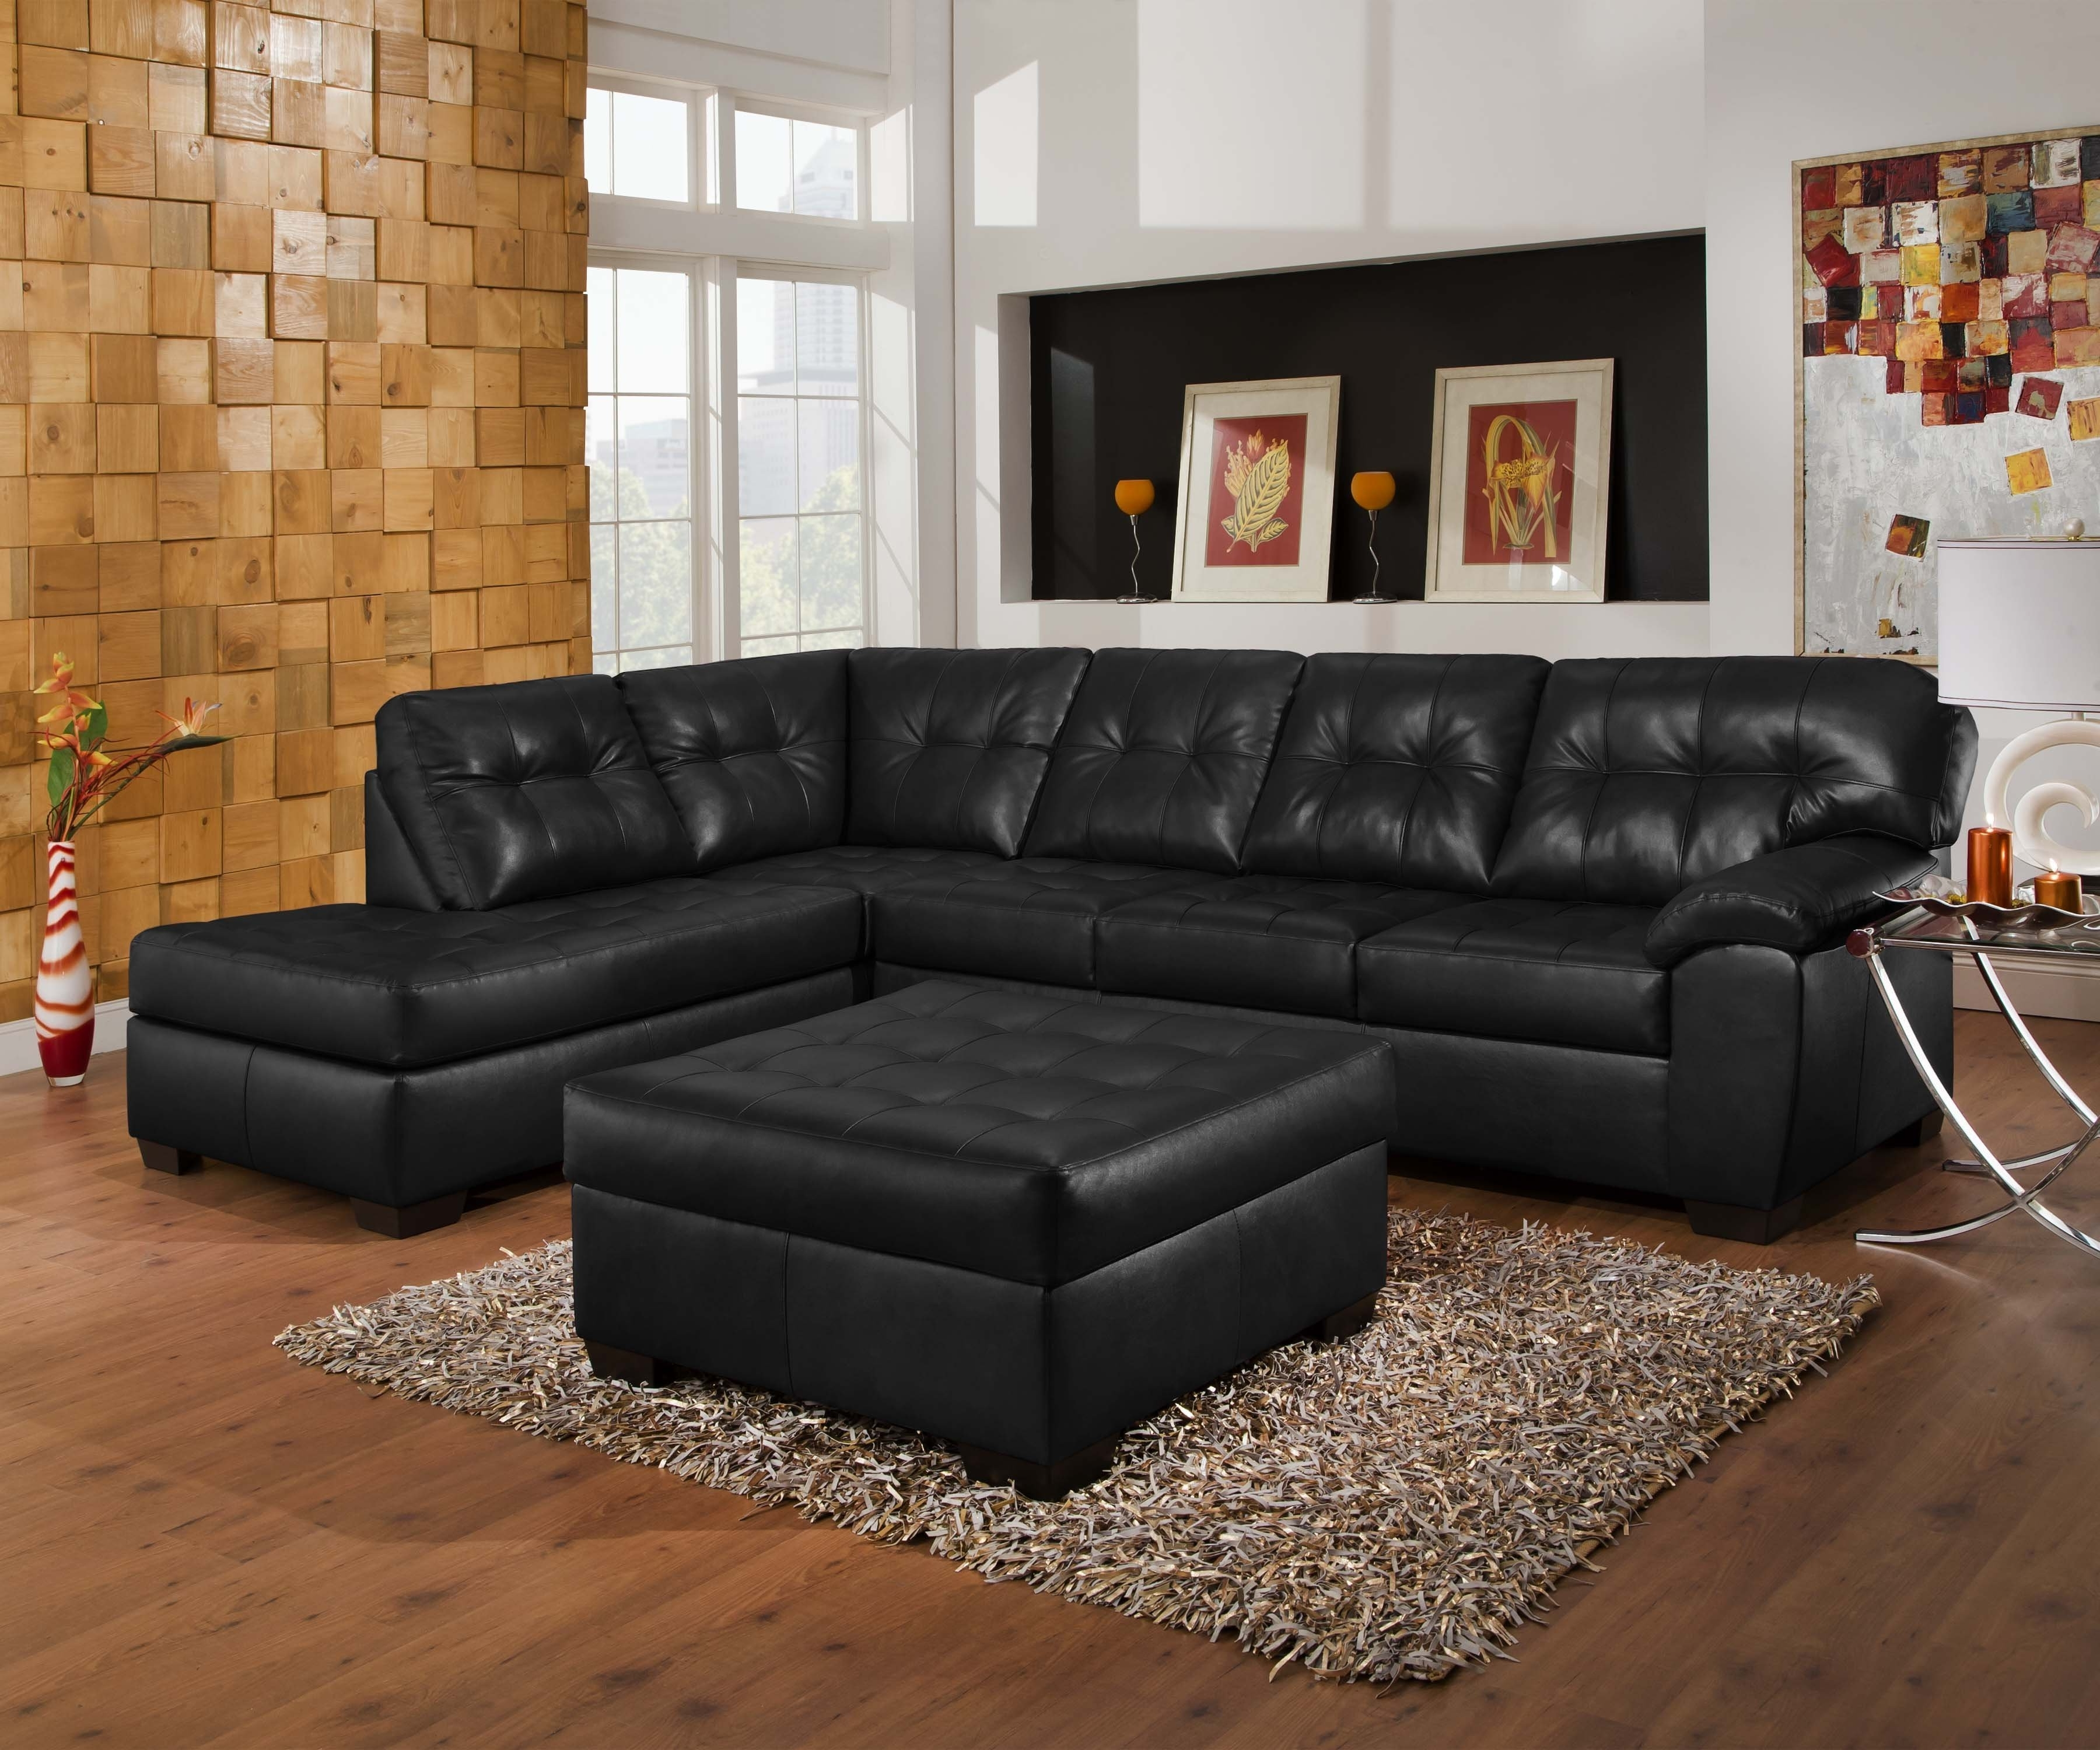 Well Known Sectional Sofa Clearance Brown Leather Fabrica Sofas Canada Within Canada Sale Sectional Sofas (View 9 of 20)